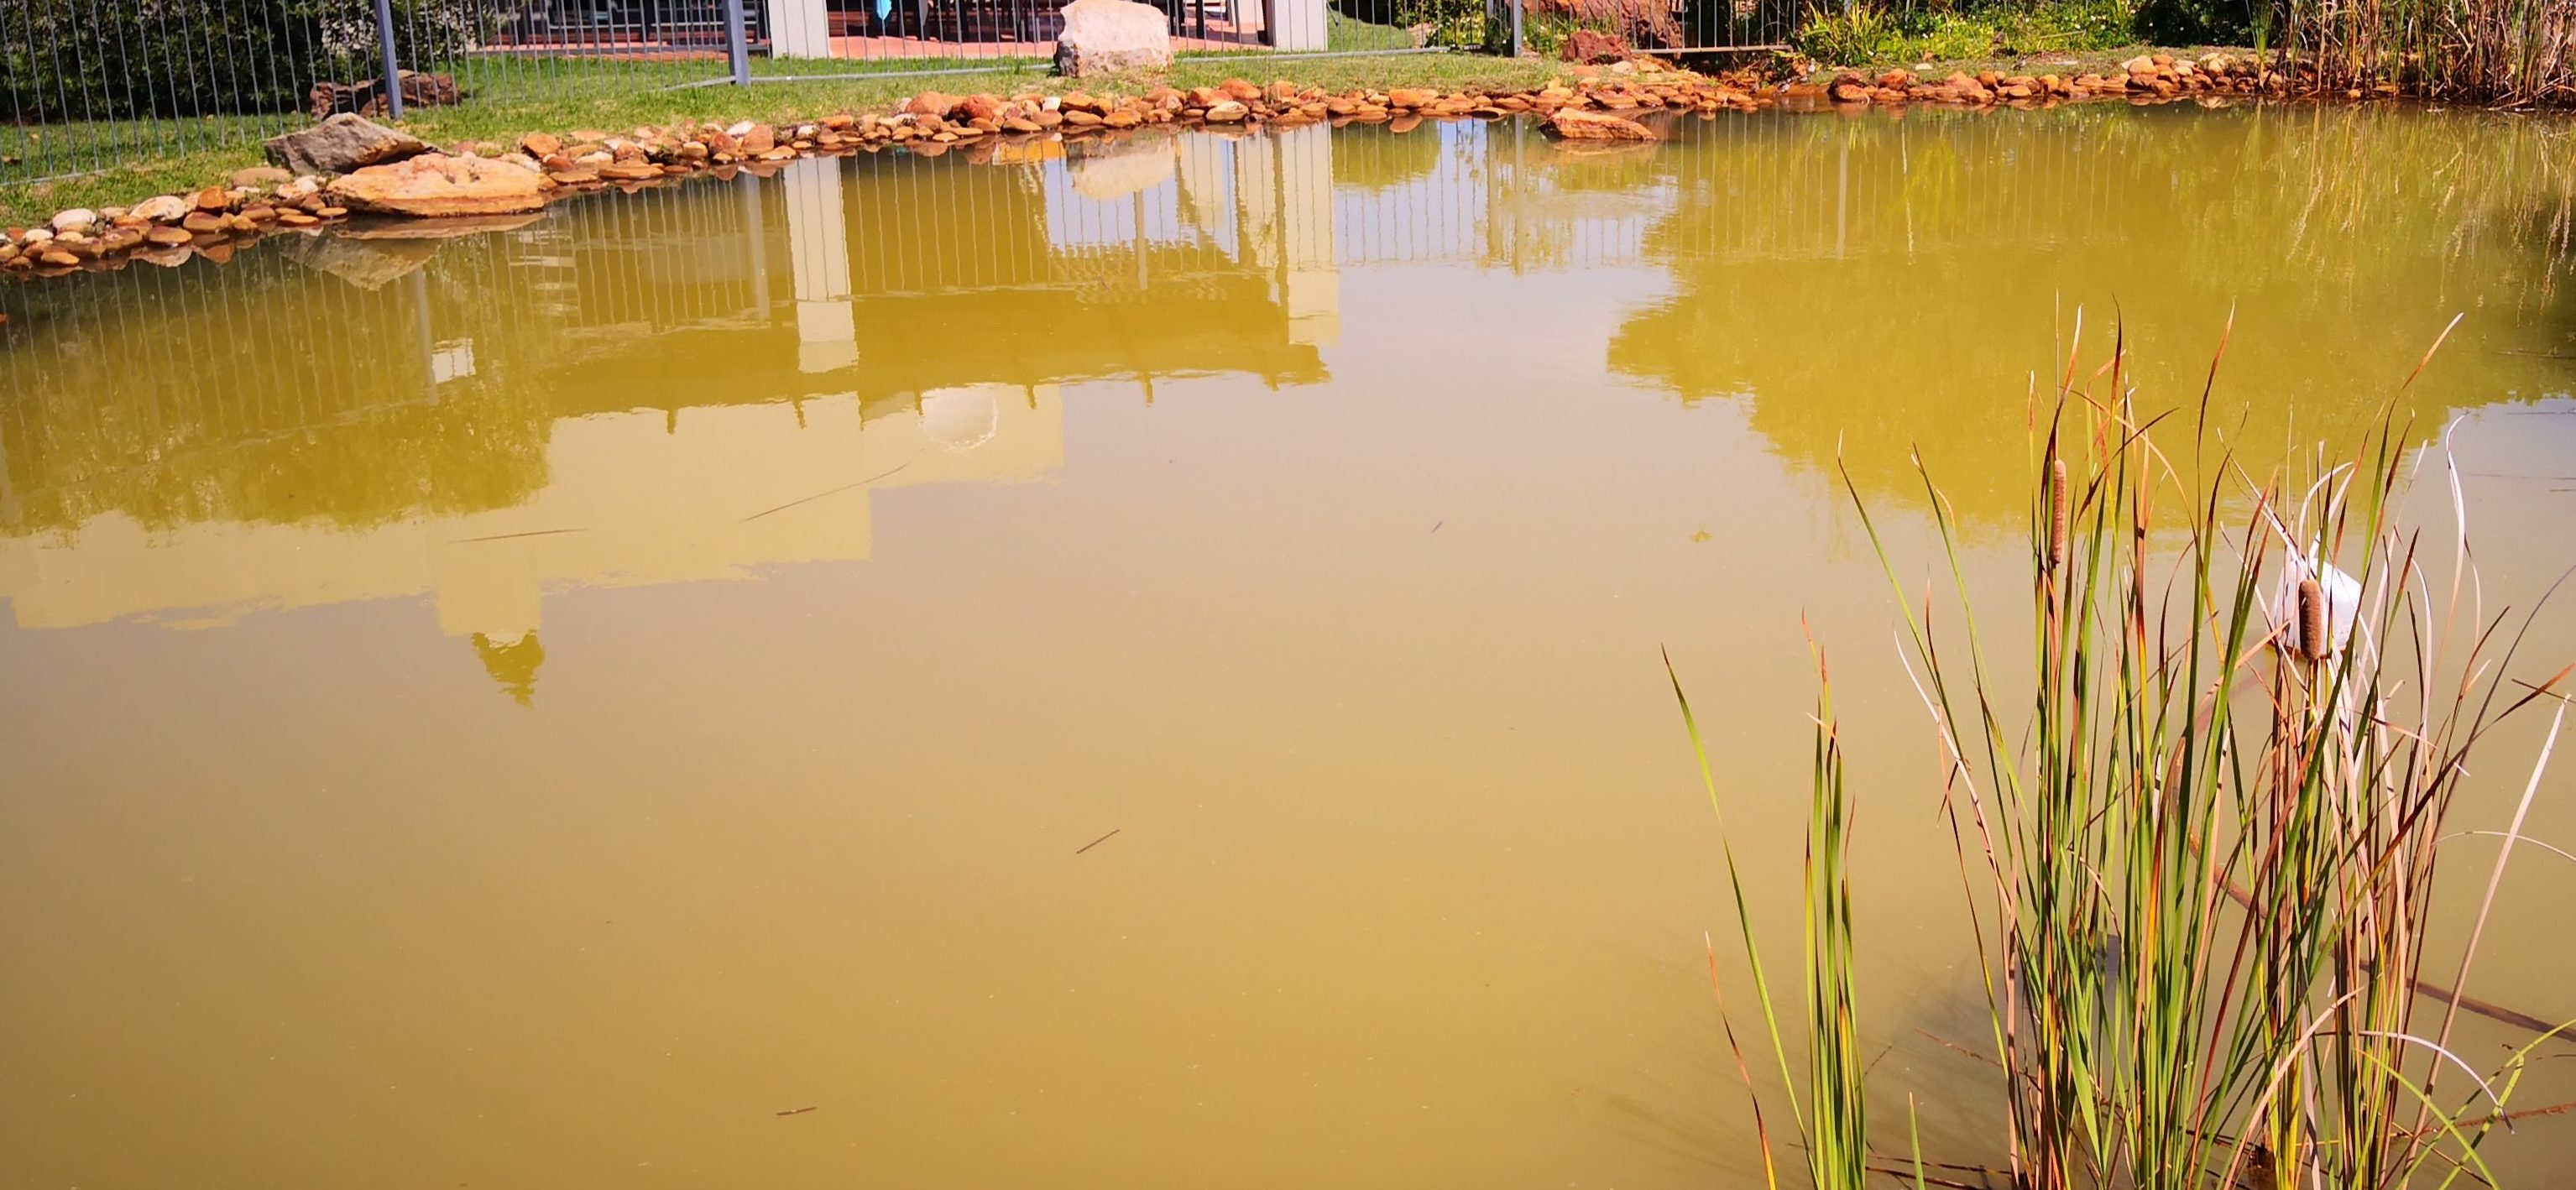 Pond with High Iron Levels